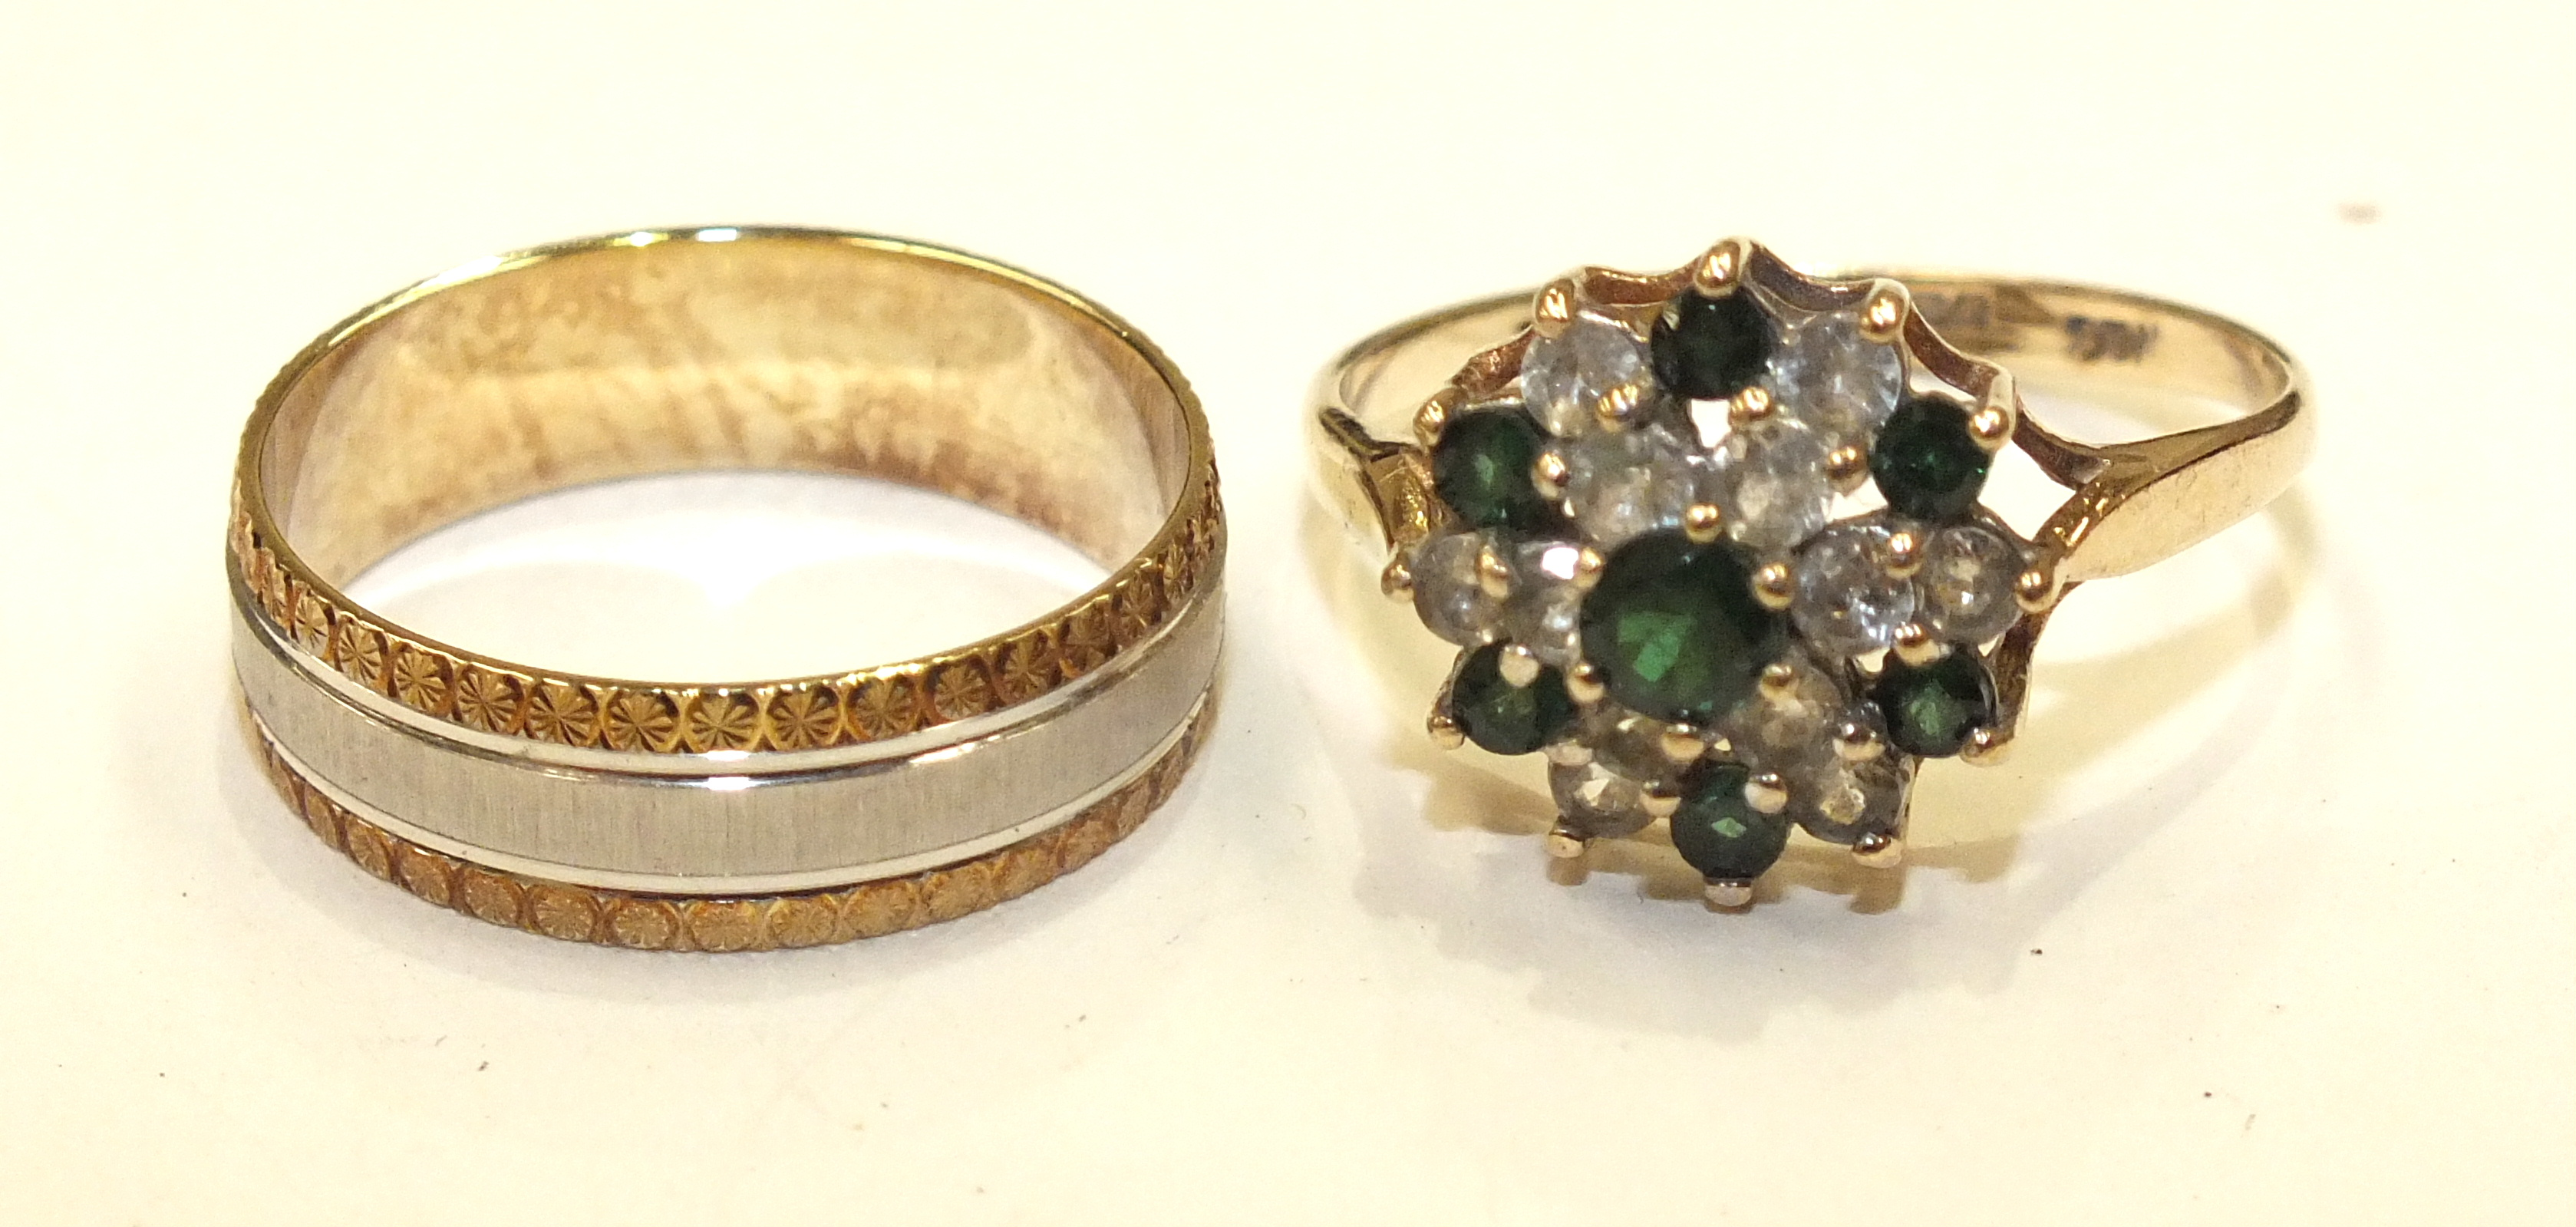 Lot 301 - A 9ct gold ring set synthetic green and white stones and a 9ct gold wedding band, 5g, (2).